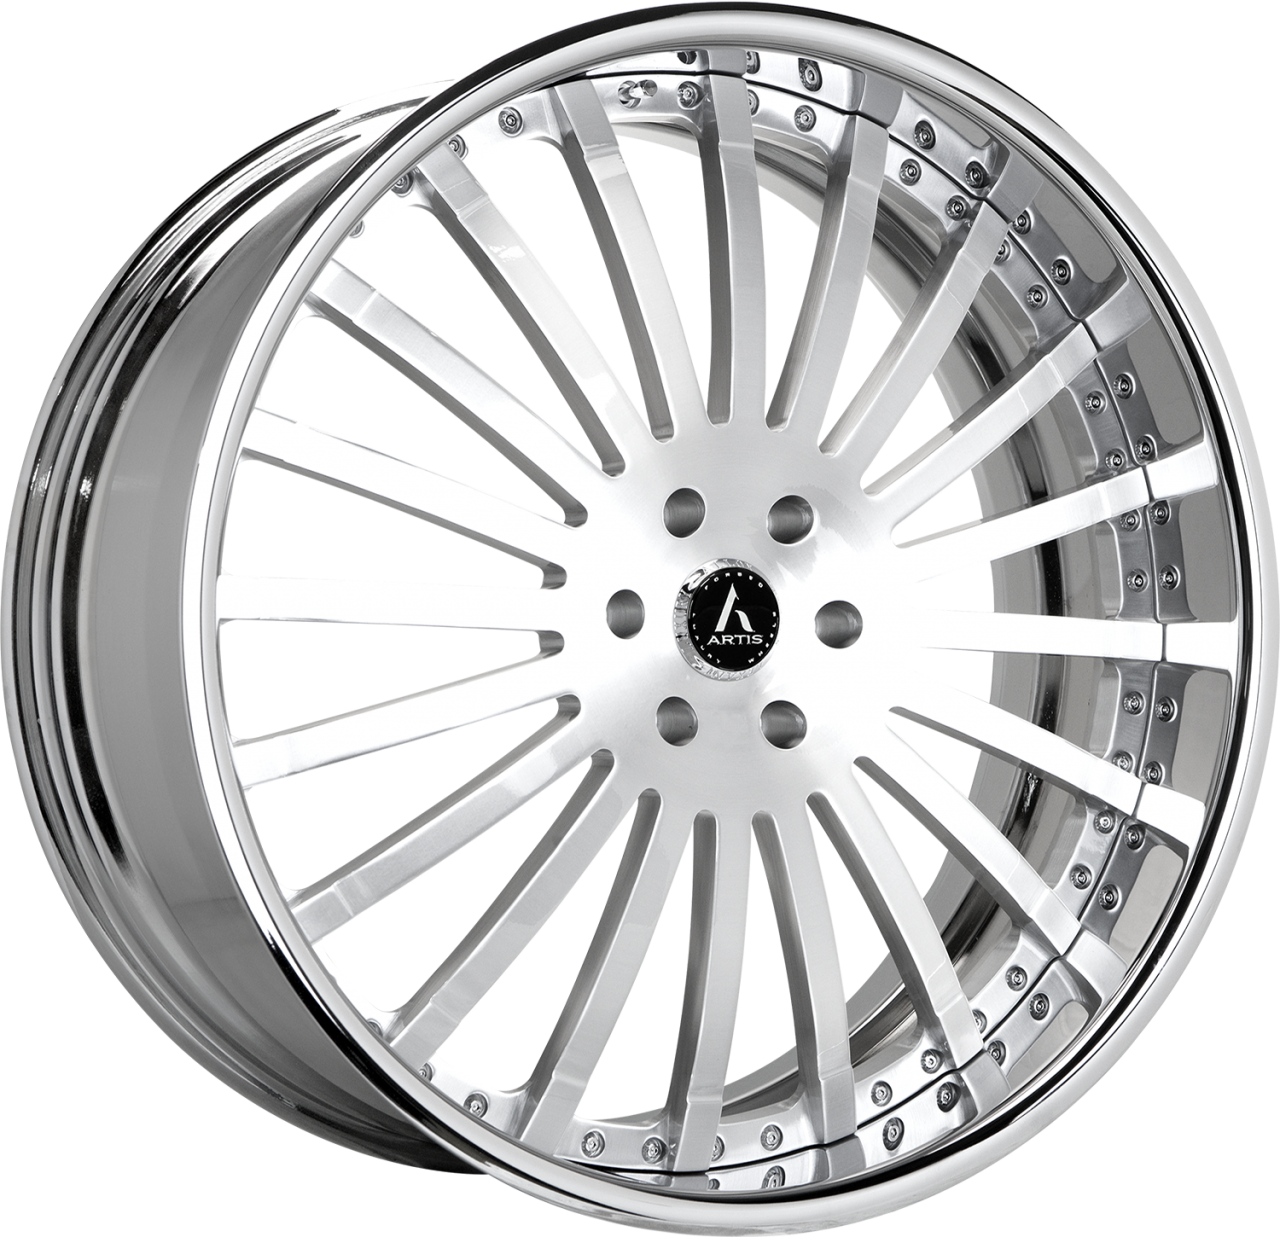 Artis Forged Coronado wheel with Brushed finish